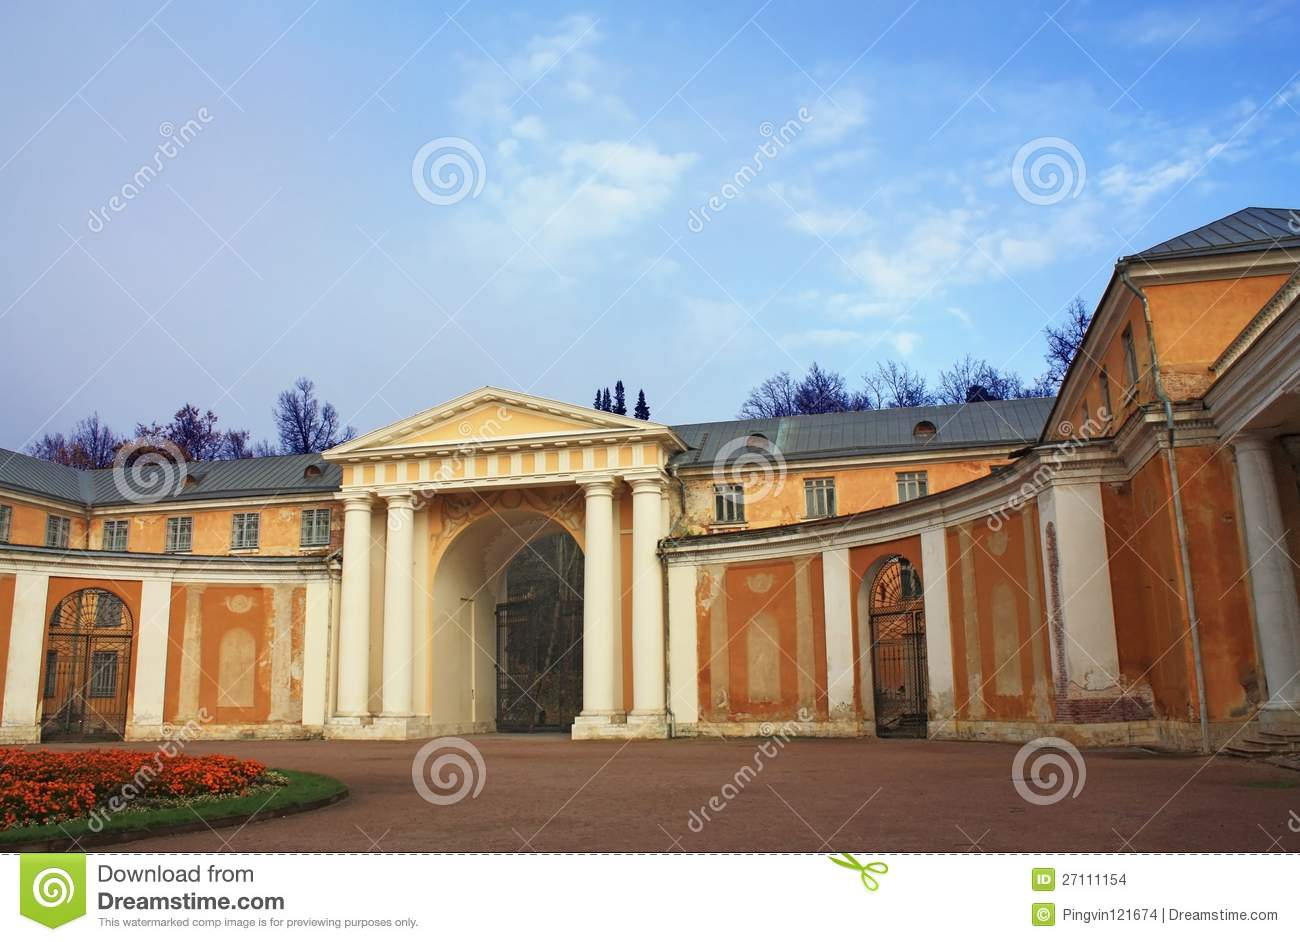 Classical Fronton With Columns And Arch Stock Photo - Image of